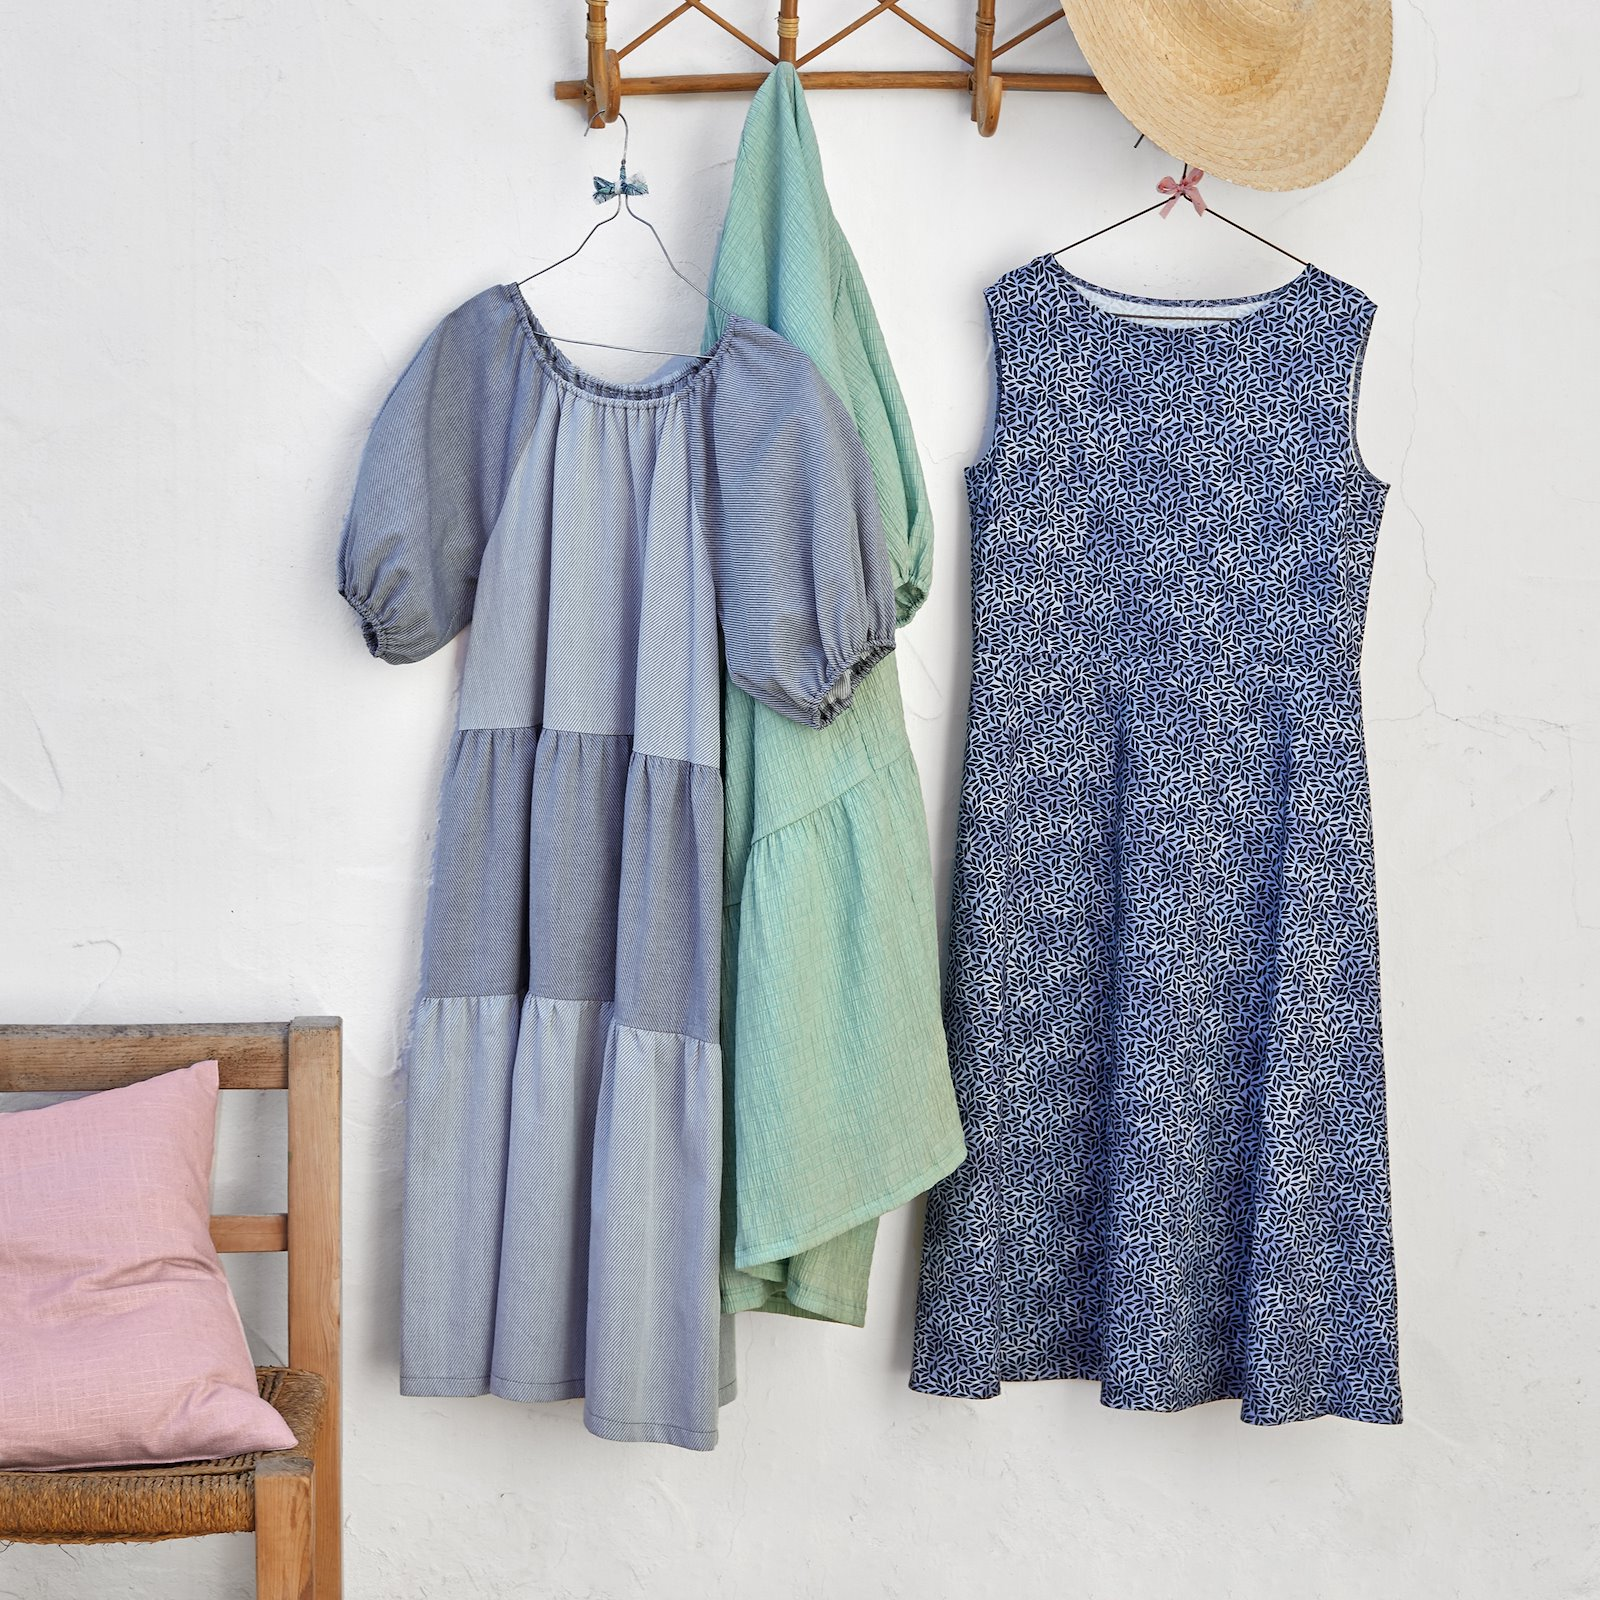 Dress with a full skirt, 46/18 p23168_852356_501860_560261_90000000_p23154_272689_bundle